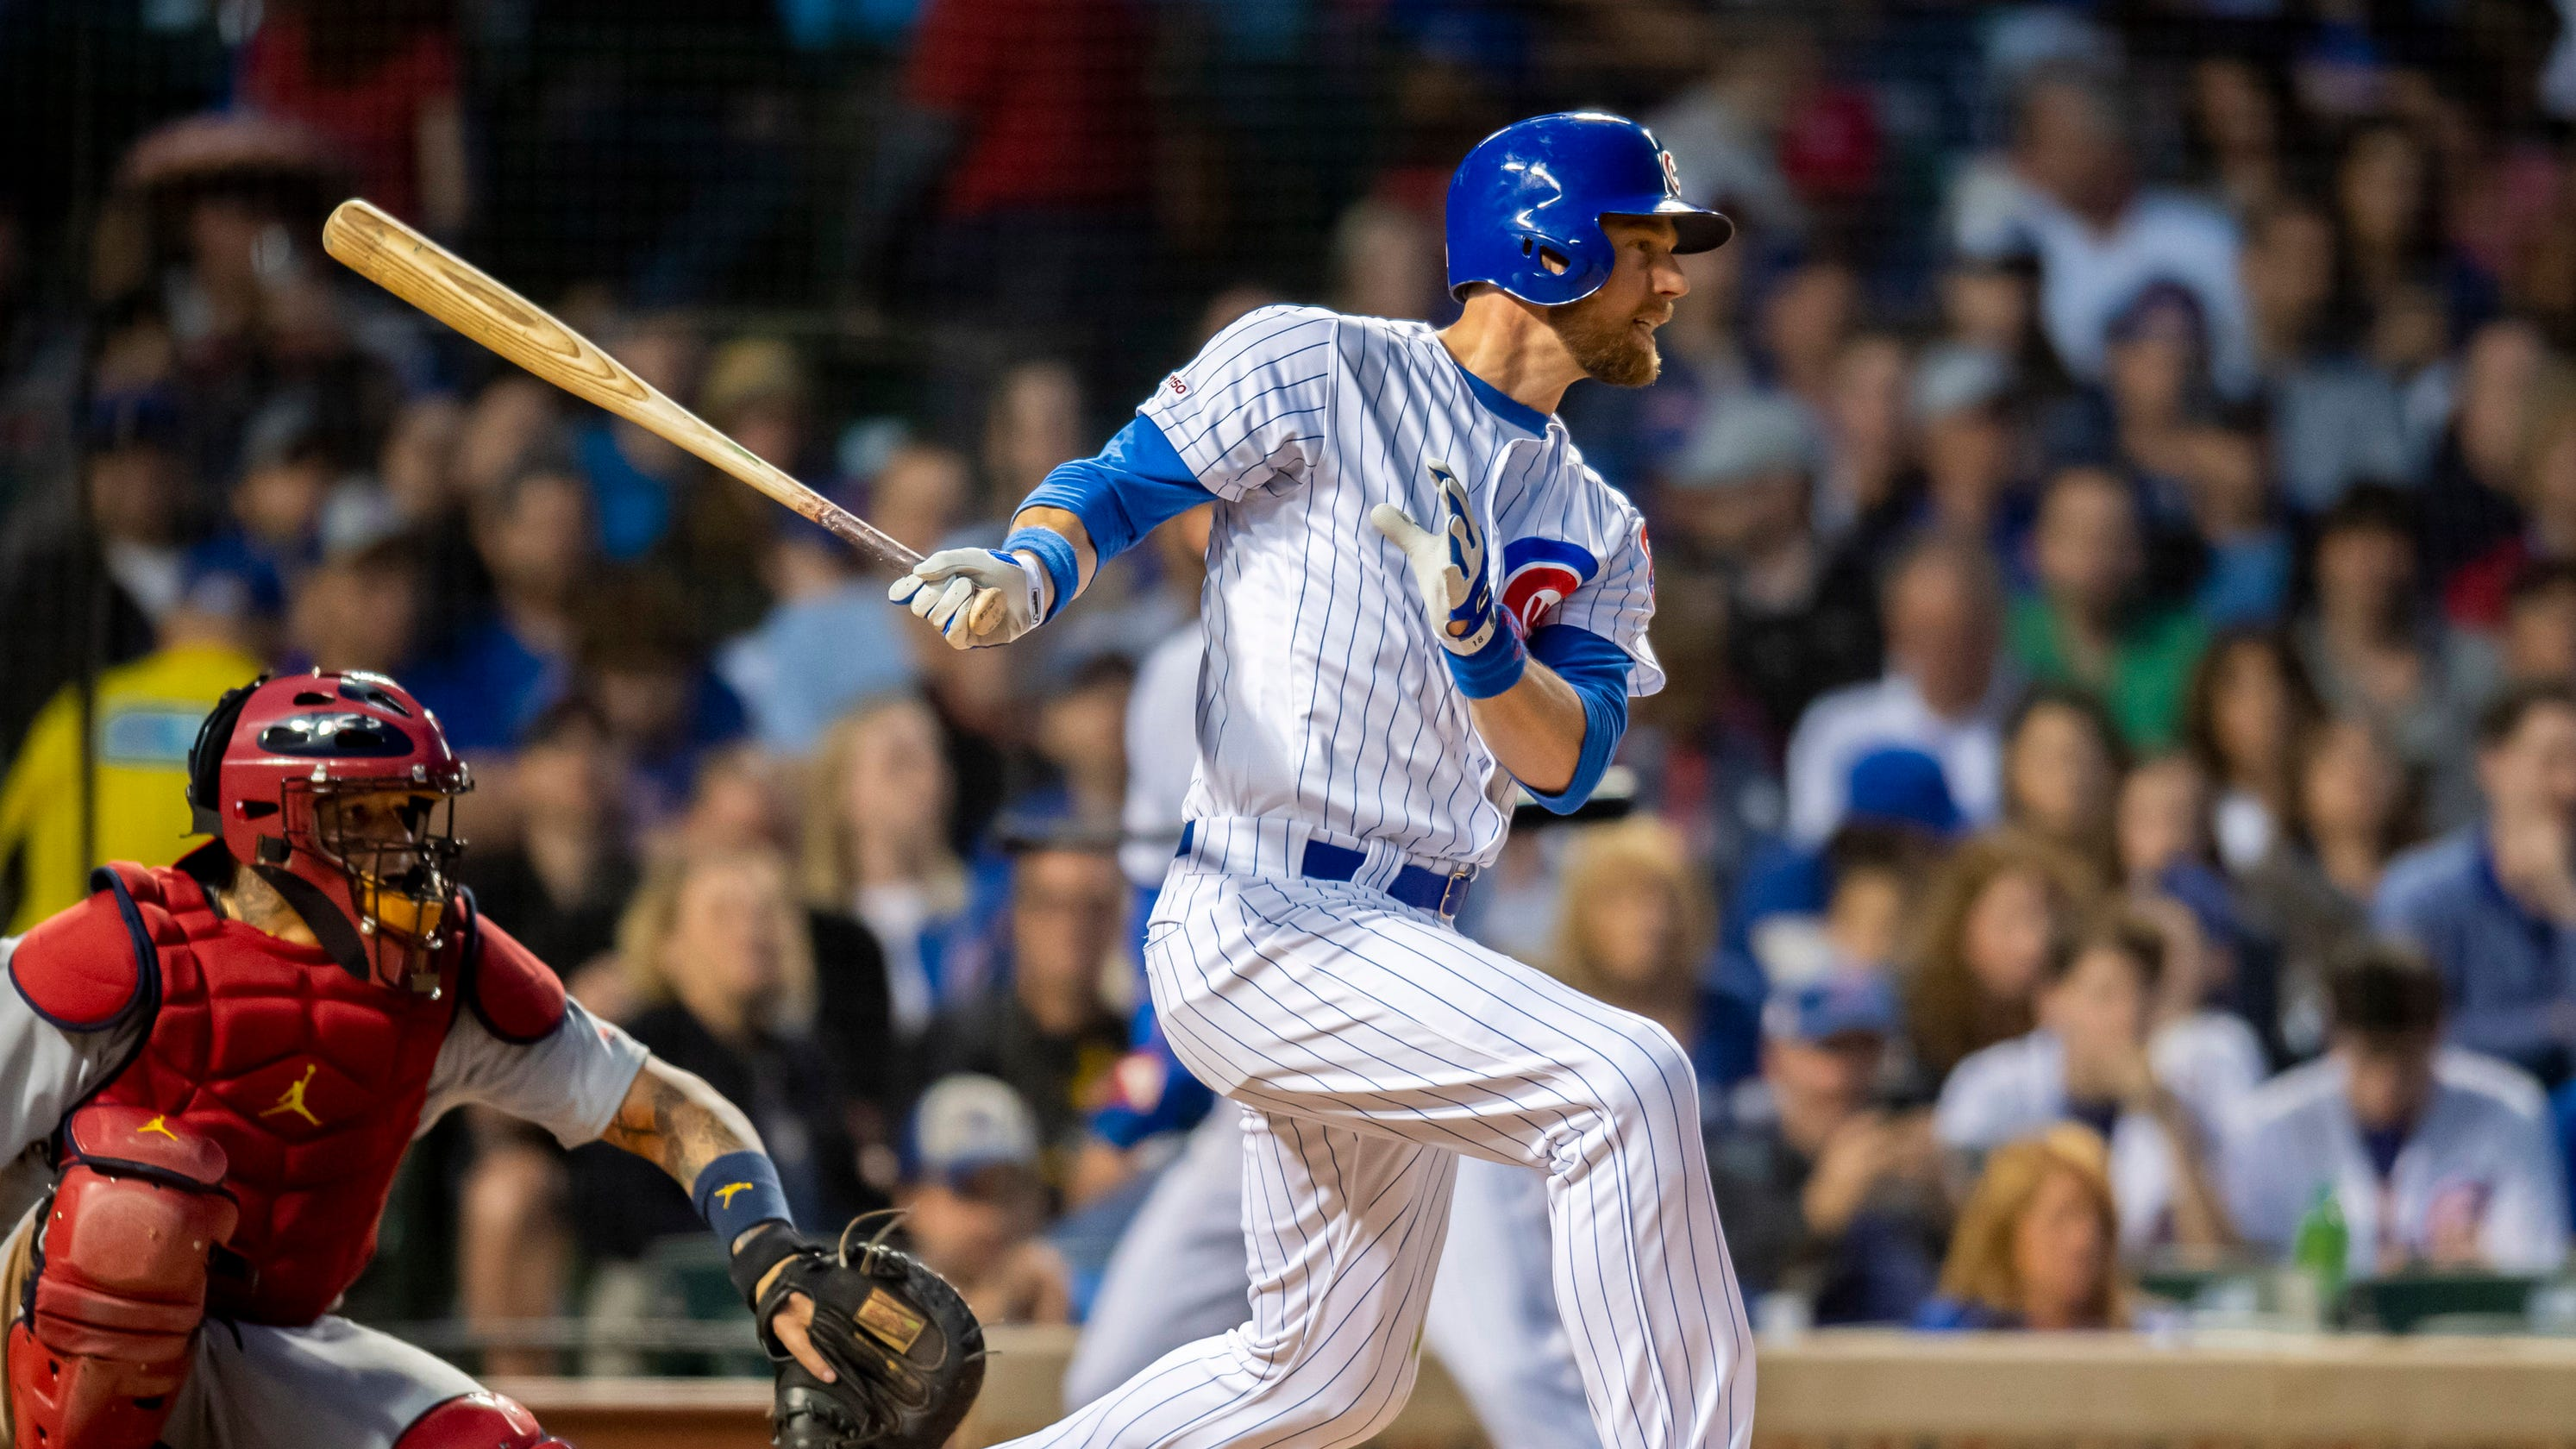 brand new f7434 e204c Chicago Cubs infielder/outfielder Ben Zobrist joining Iowa Cubs